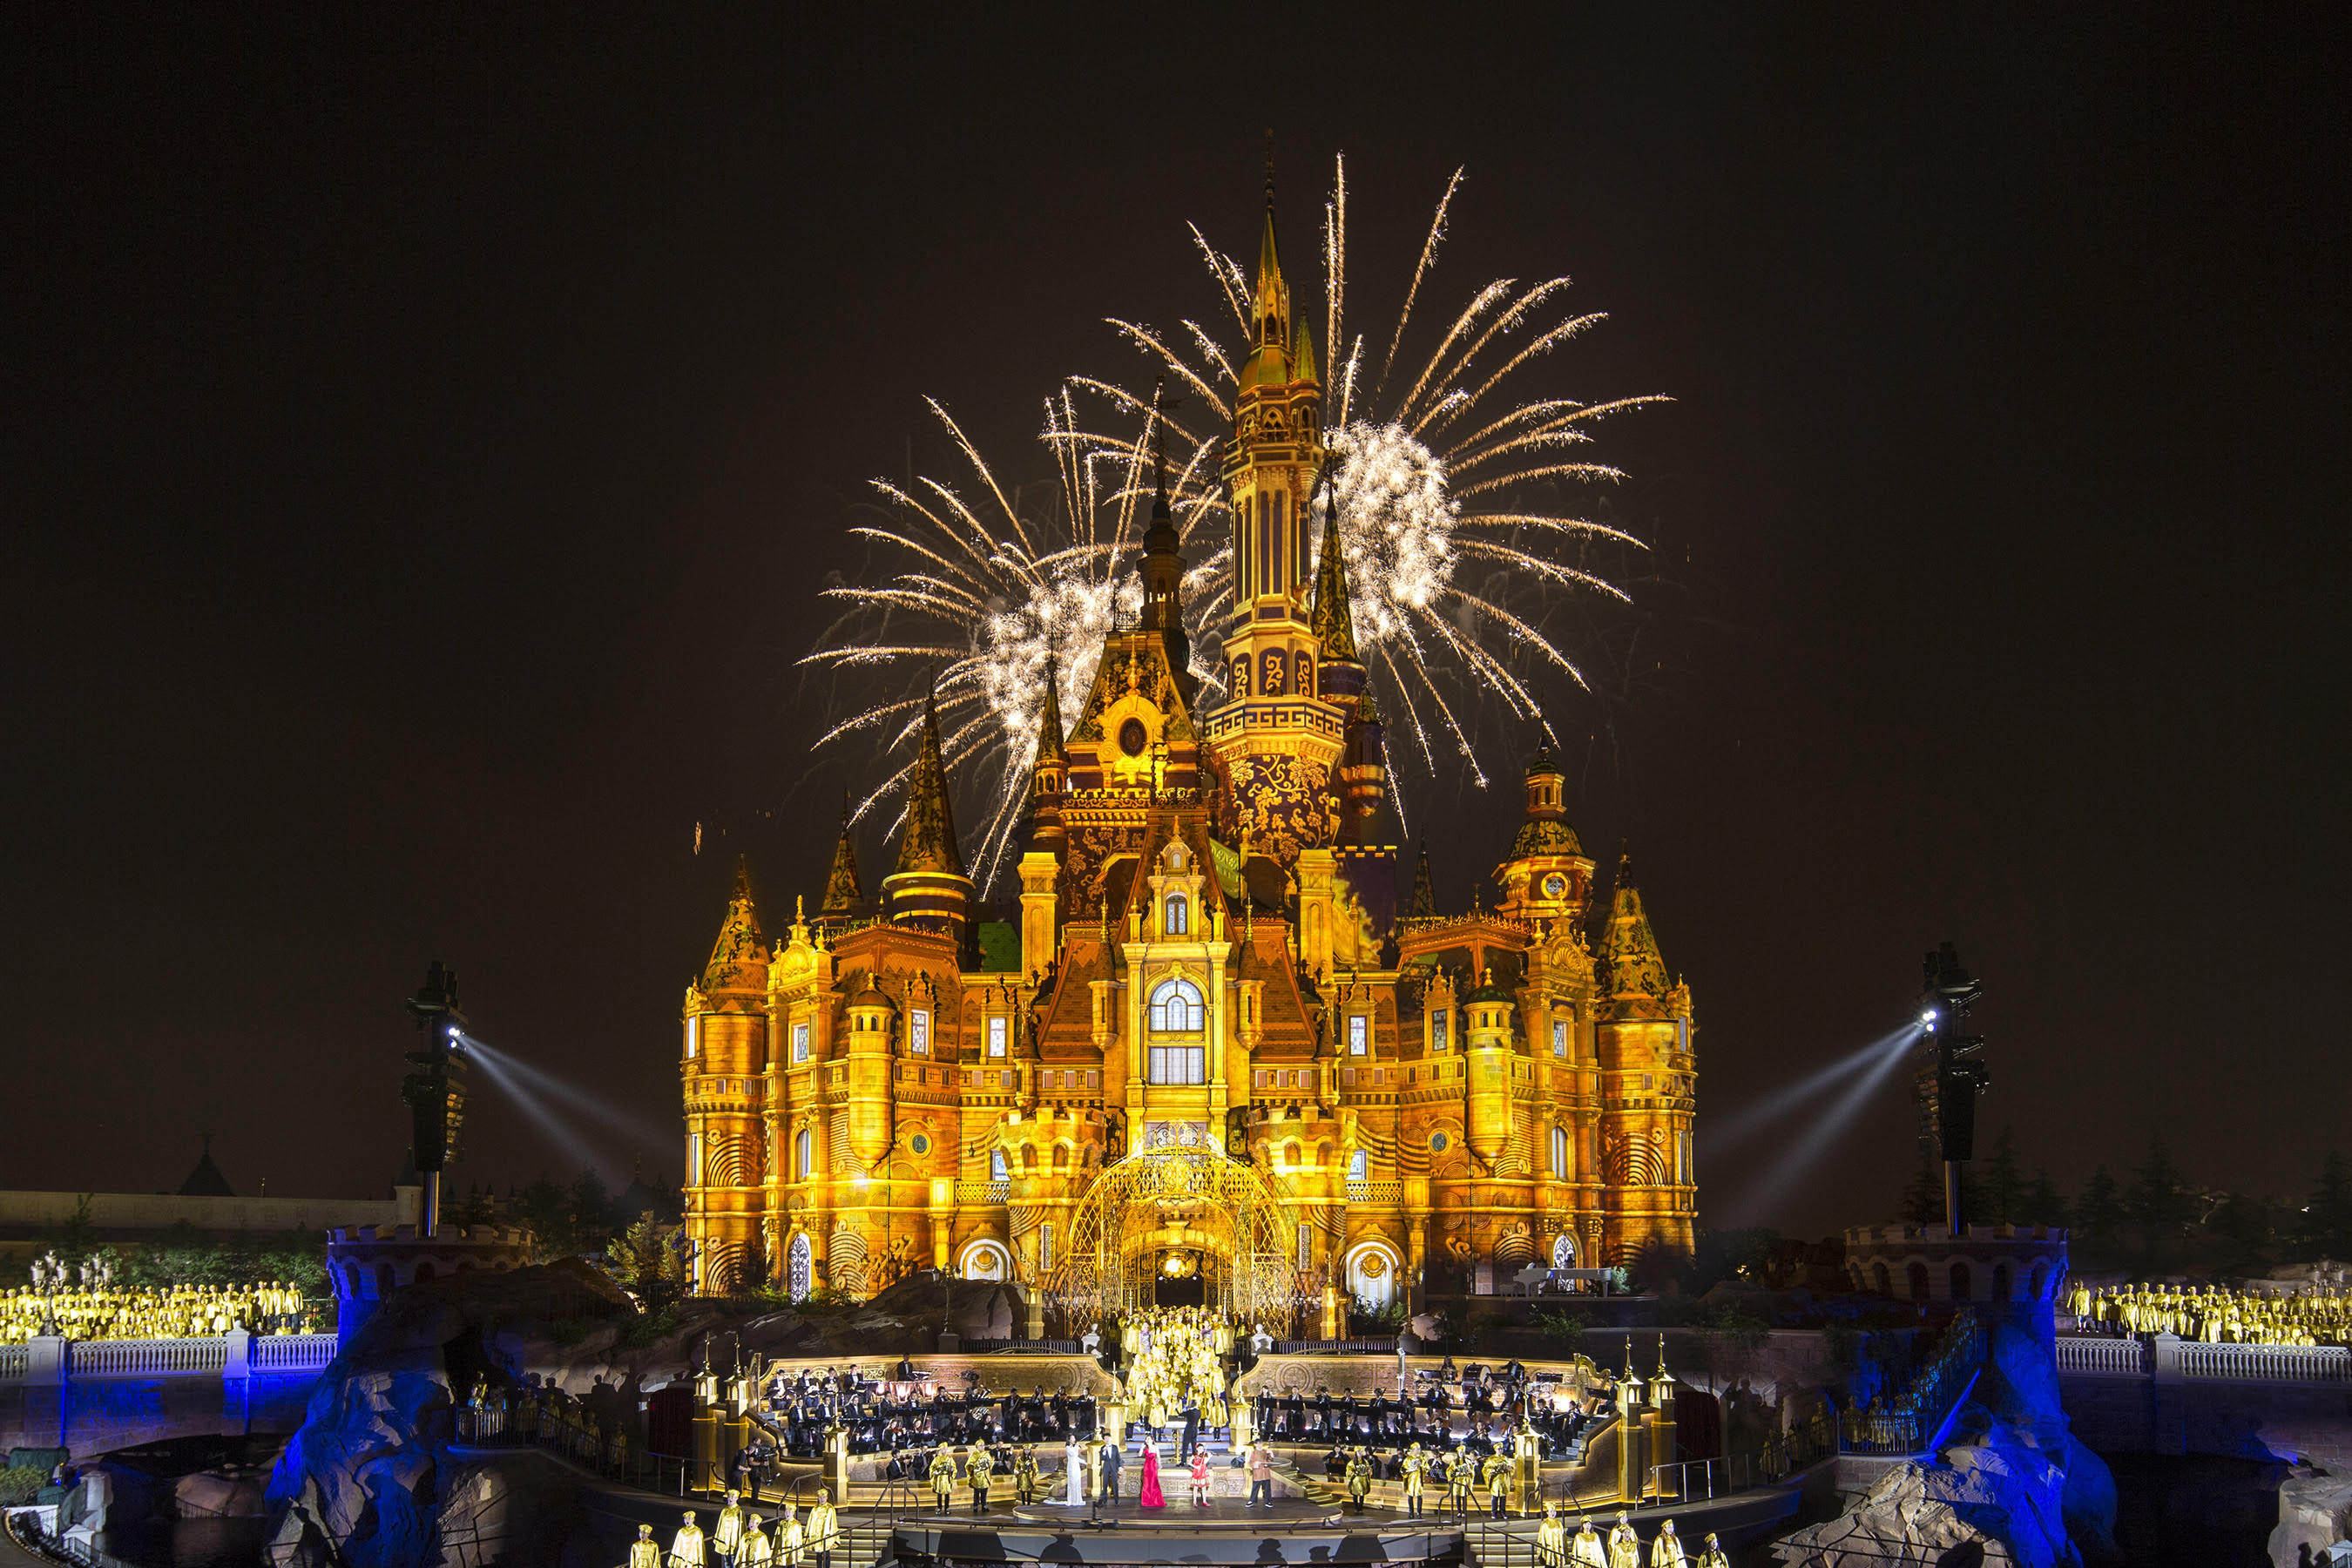 "SHANGHAI (June 15, 2016)  On the eve of the Grand Opening of Shanghai Disney Resort, Disney celebrated the historic occasion with a star-studded, two-hour broadcast that captured the extraordinary spirit of the first Disney resort in Mainland China. The broadcast included a Grand Opening gala concert with world-renowned composer Tan Dun conducting the Shanghai Symphony Orchestra in an inspiring performance of his original composition, ""Igniting the Magical Dream.""  The one and only Mickey Mouse joined the enchanting gala and Disney stories came to life with dazzling projections and lighting on the Enchanted Storybook Castle."